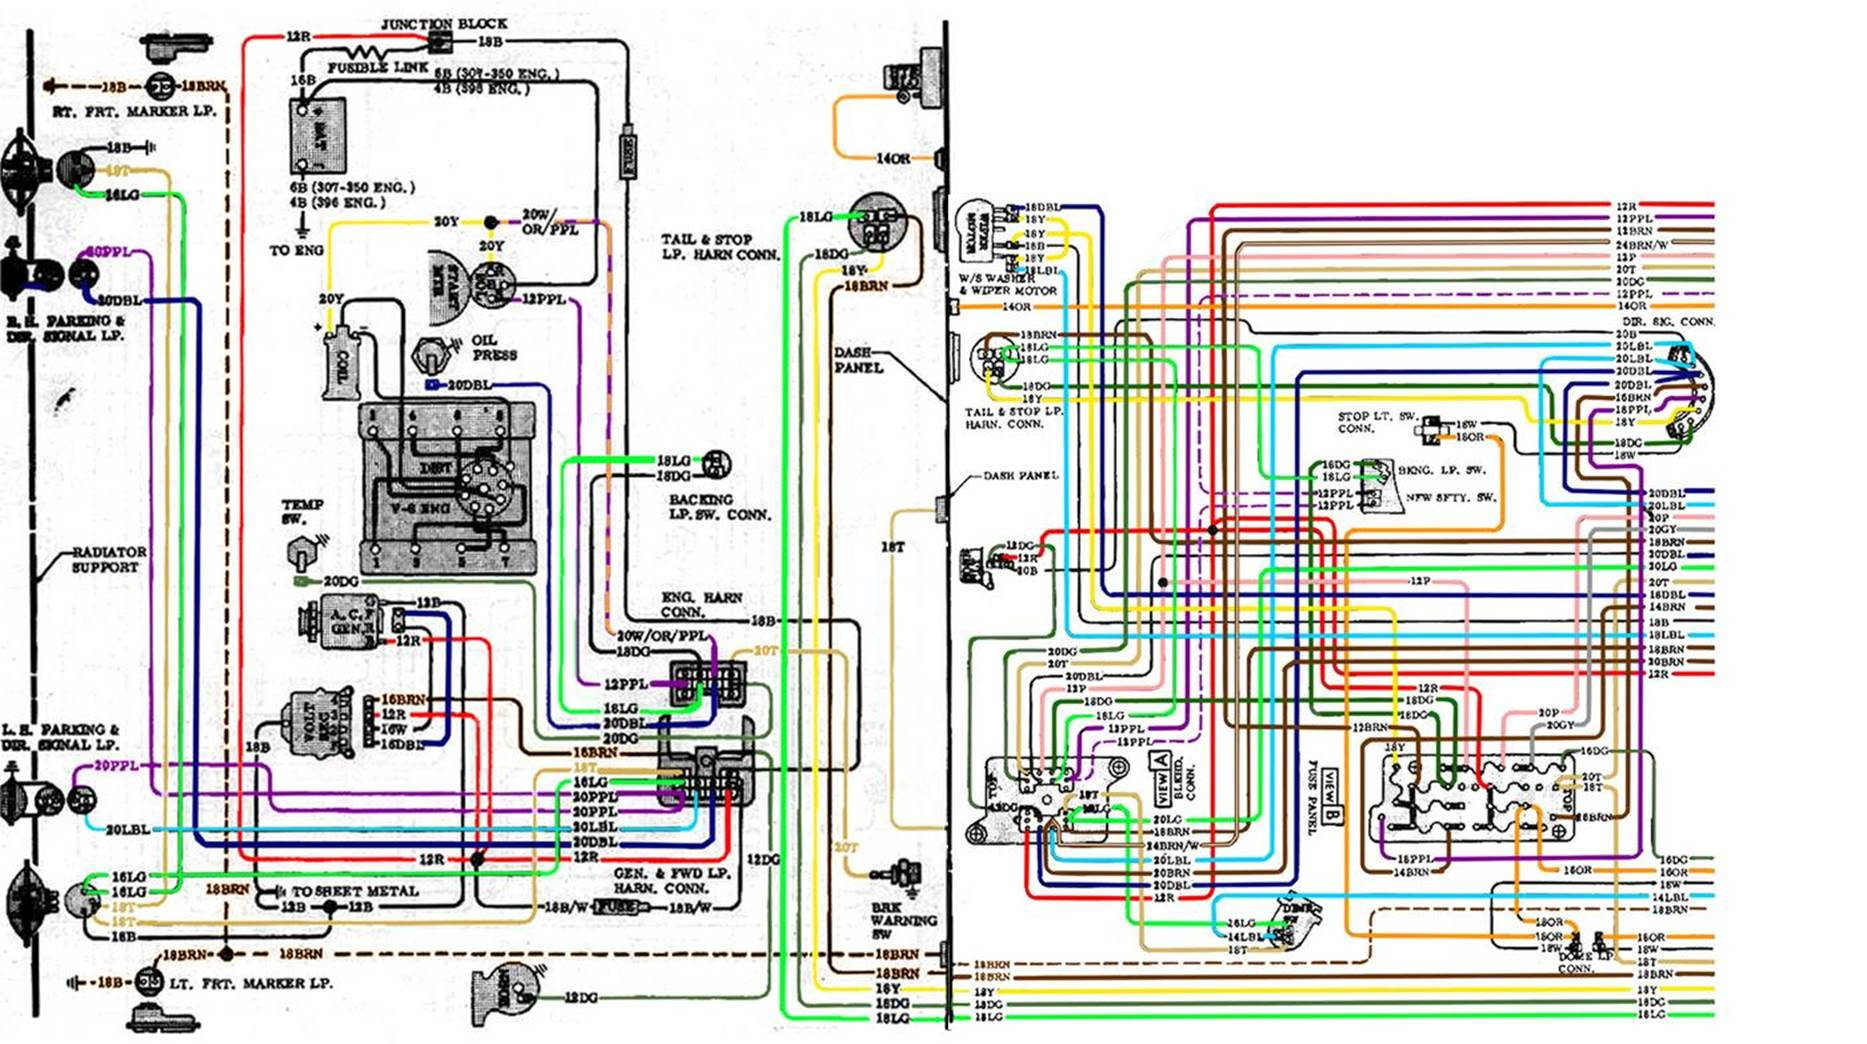 1969 chevy truck wiring harness - wiring diagram pour-note-b -  pour-note-b.agriturismoduemadonne.it  agriturismoduemadonne.it